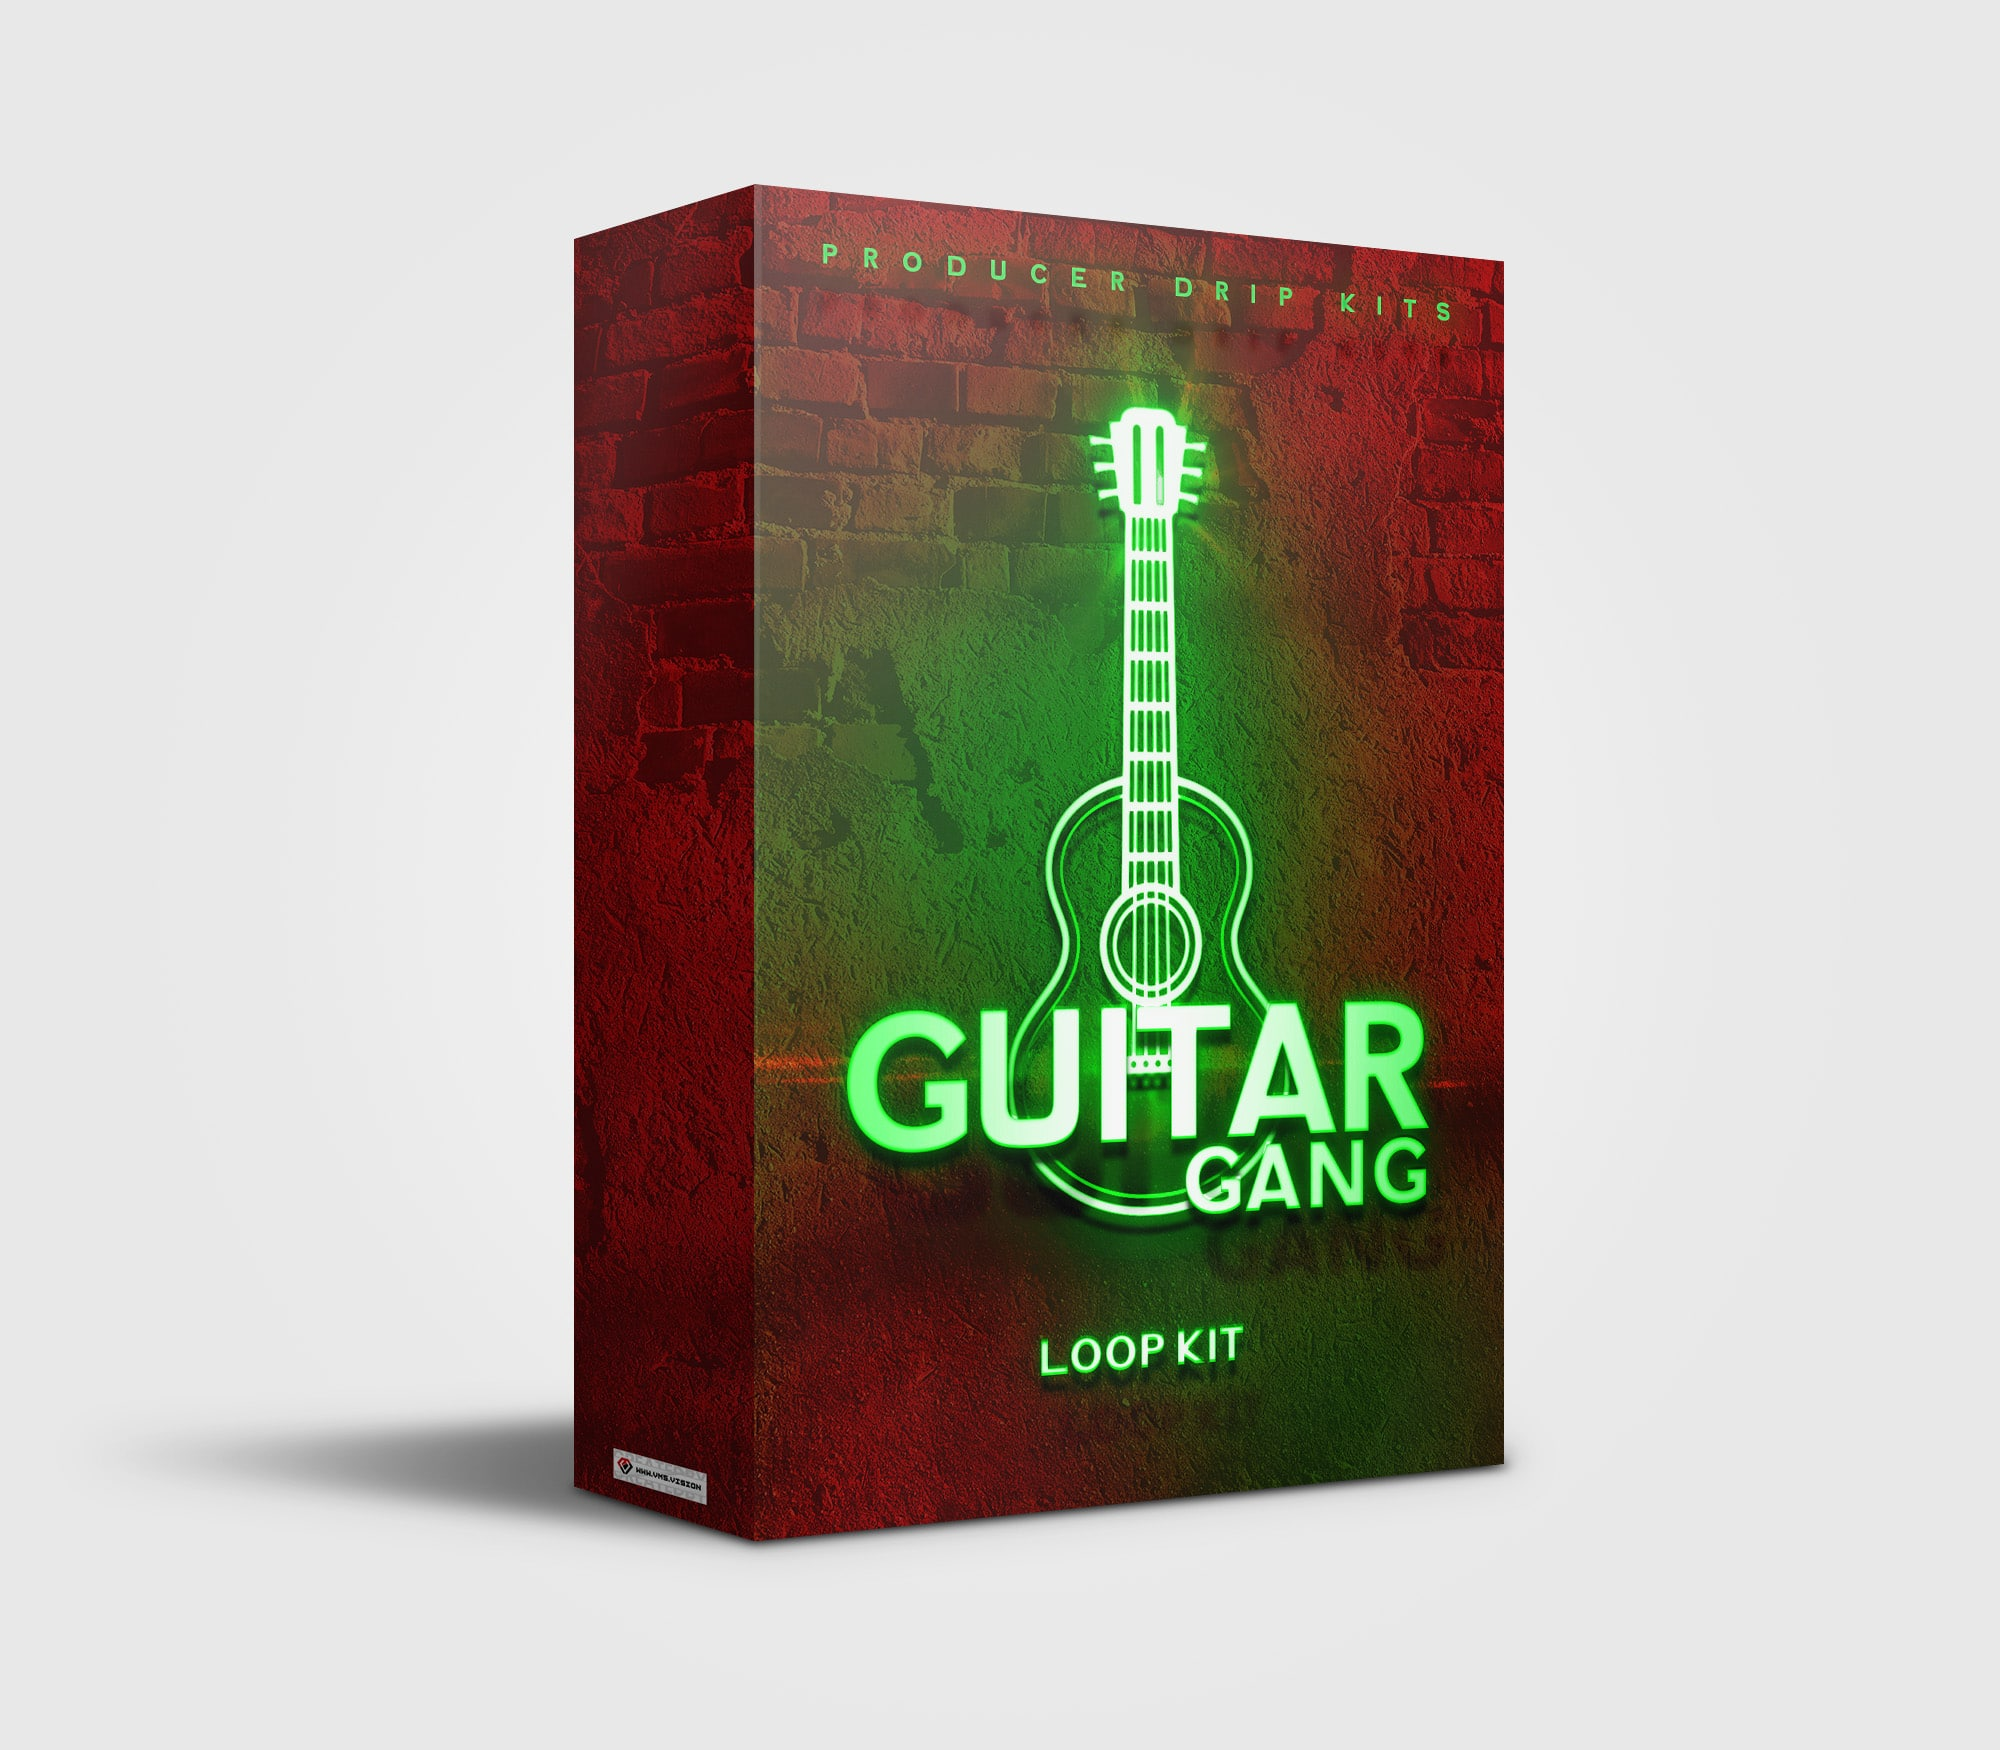 Producer Drip – Guitar Gang Loop Kit